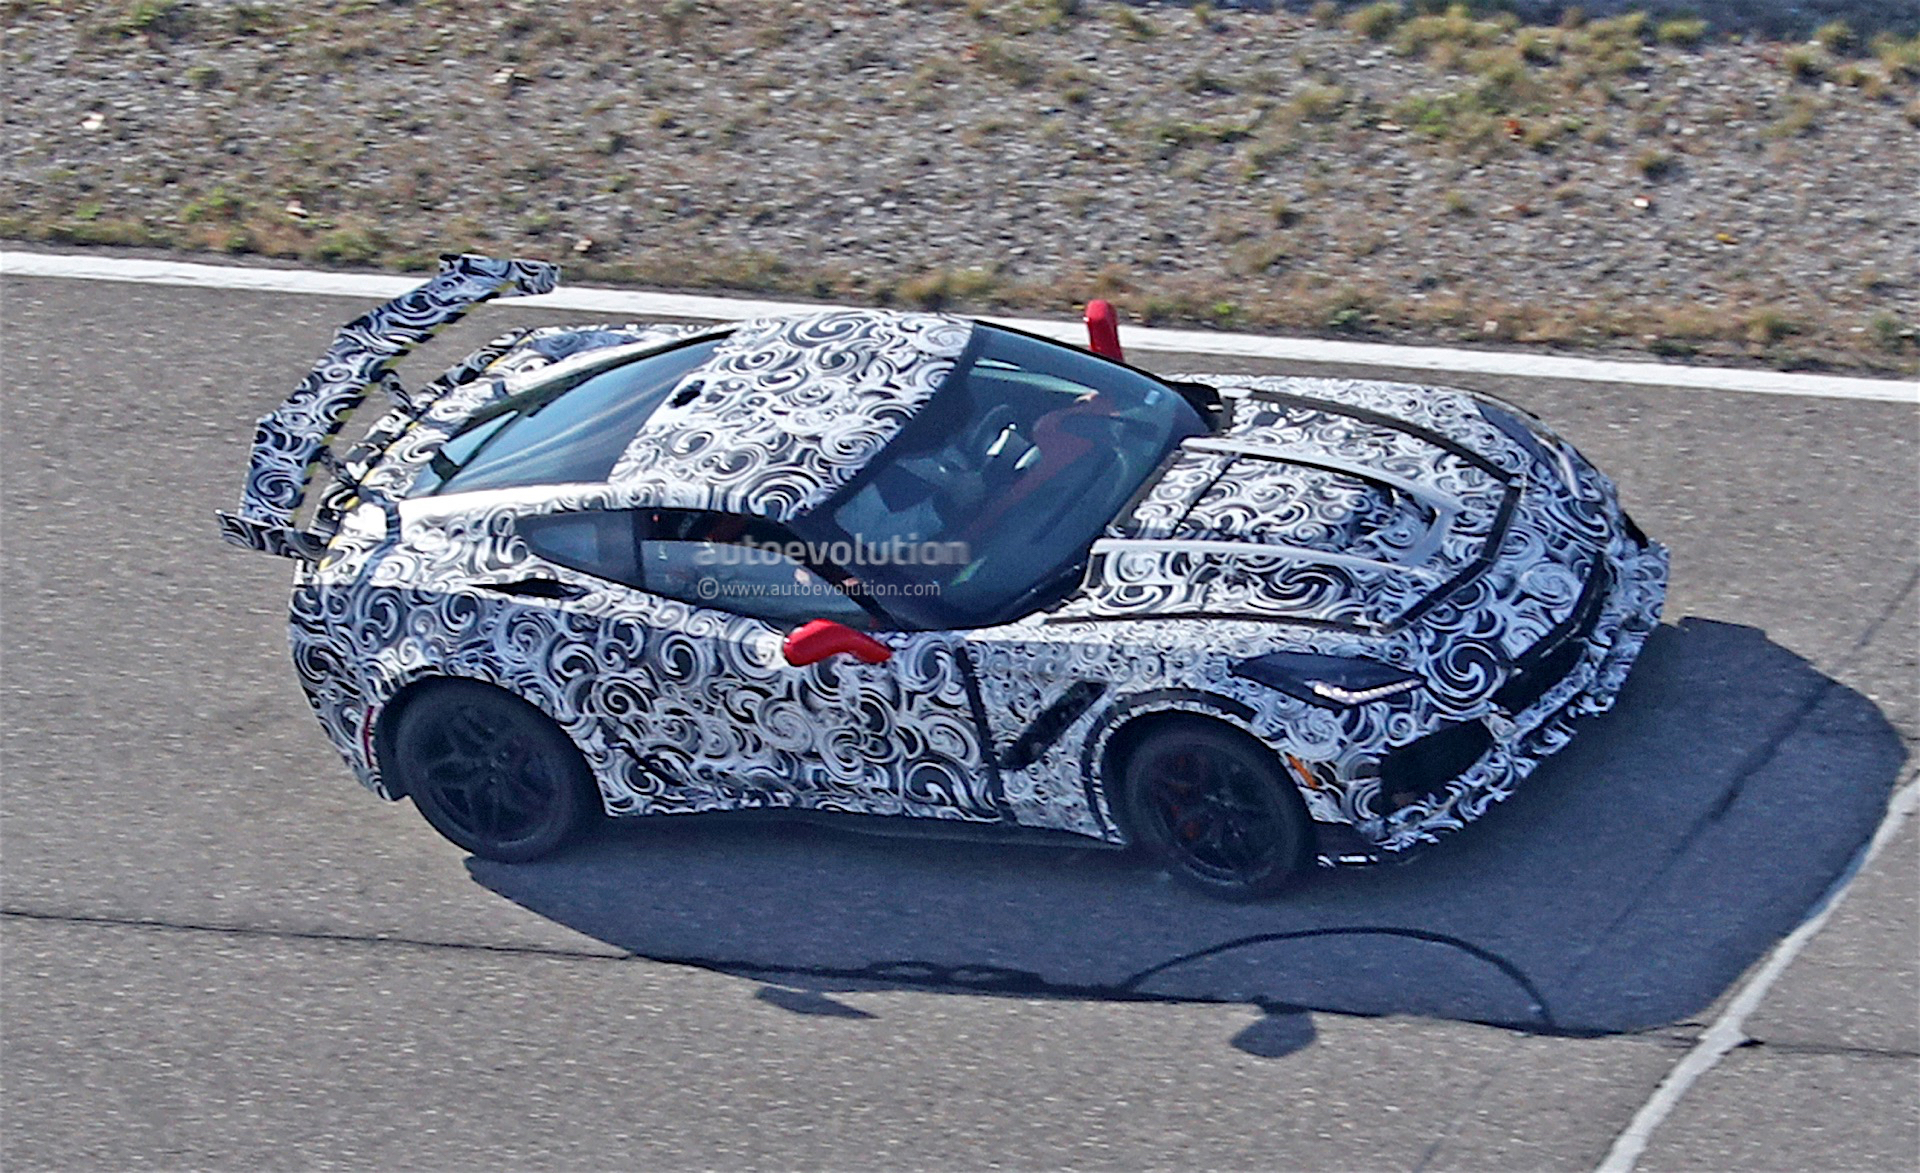 2018 Corvette ZR1 Spied With Massive Rear Wing - autoevolution